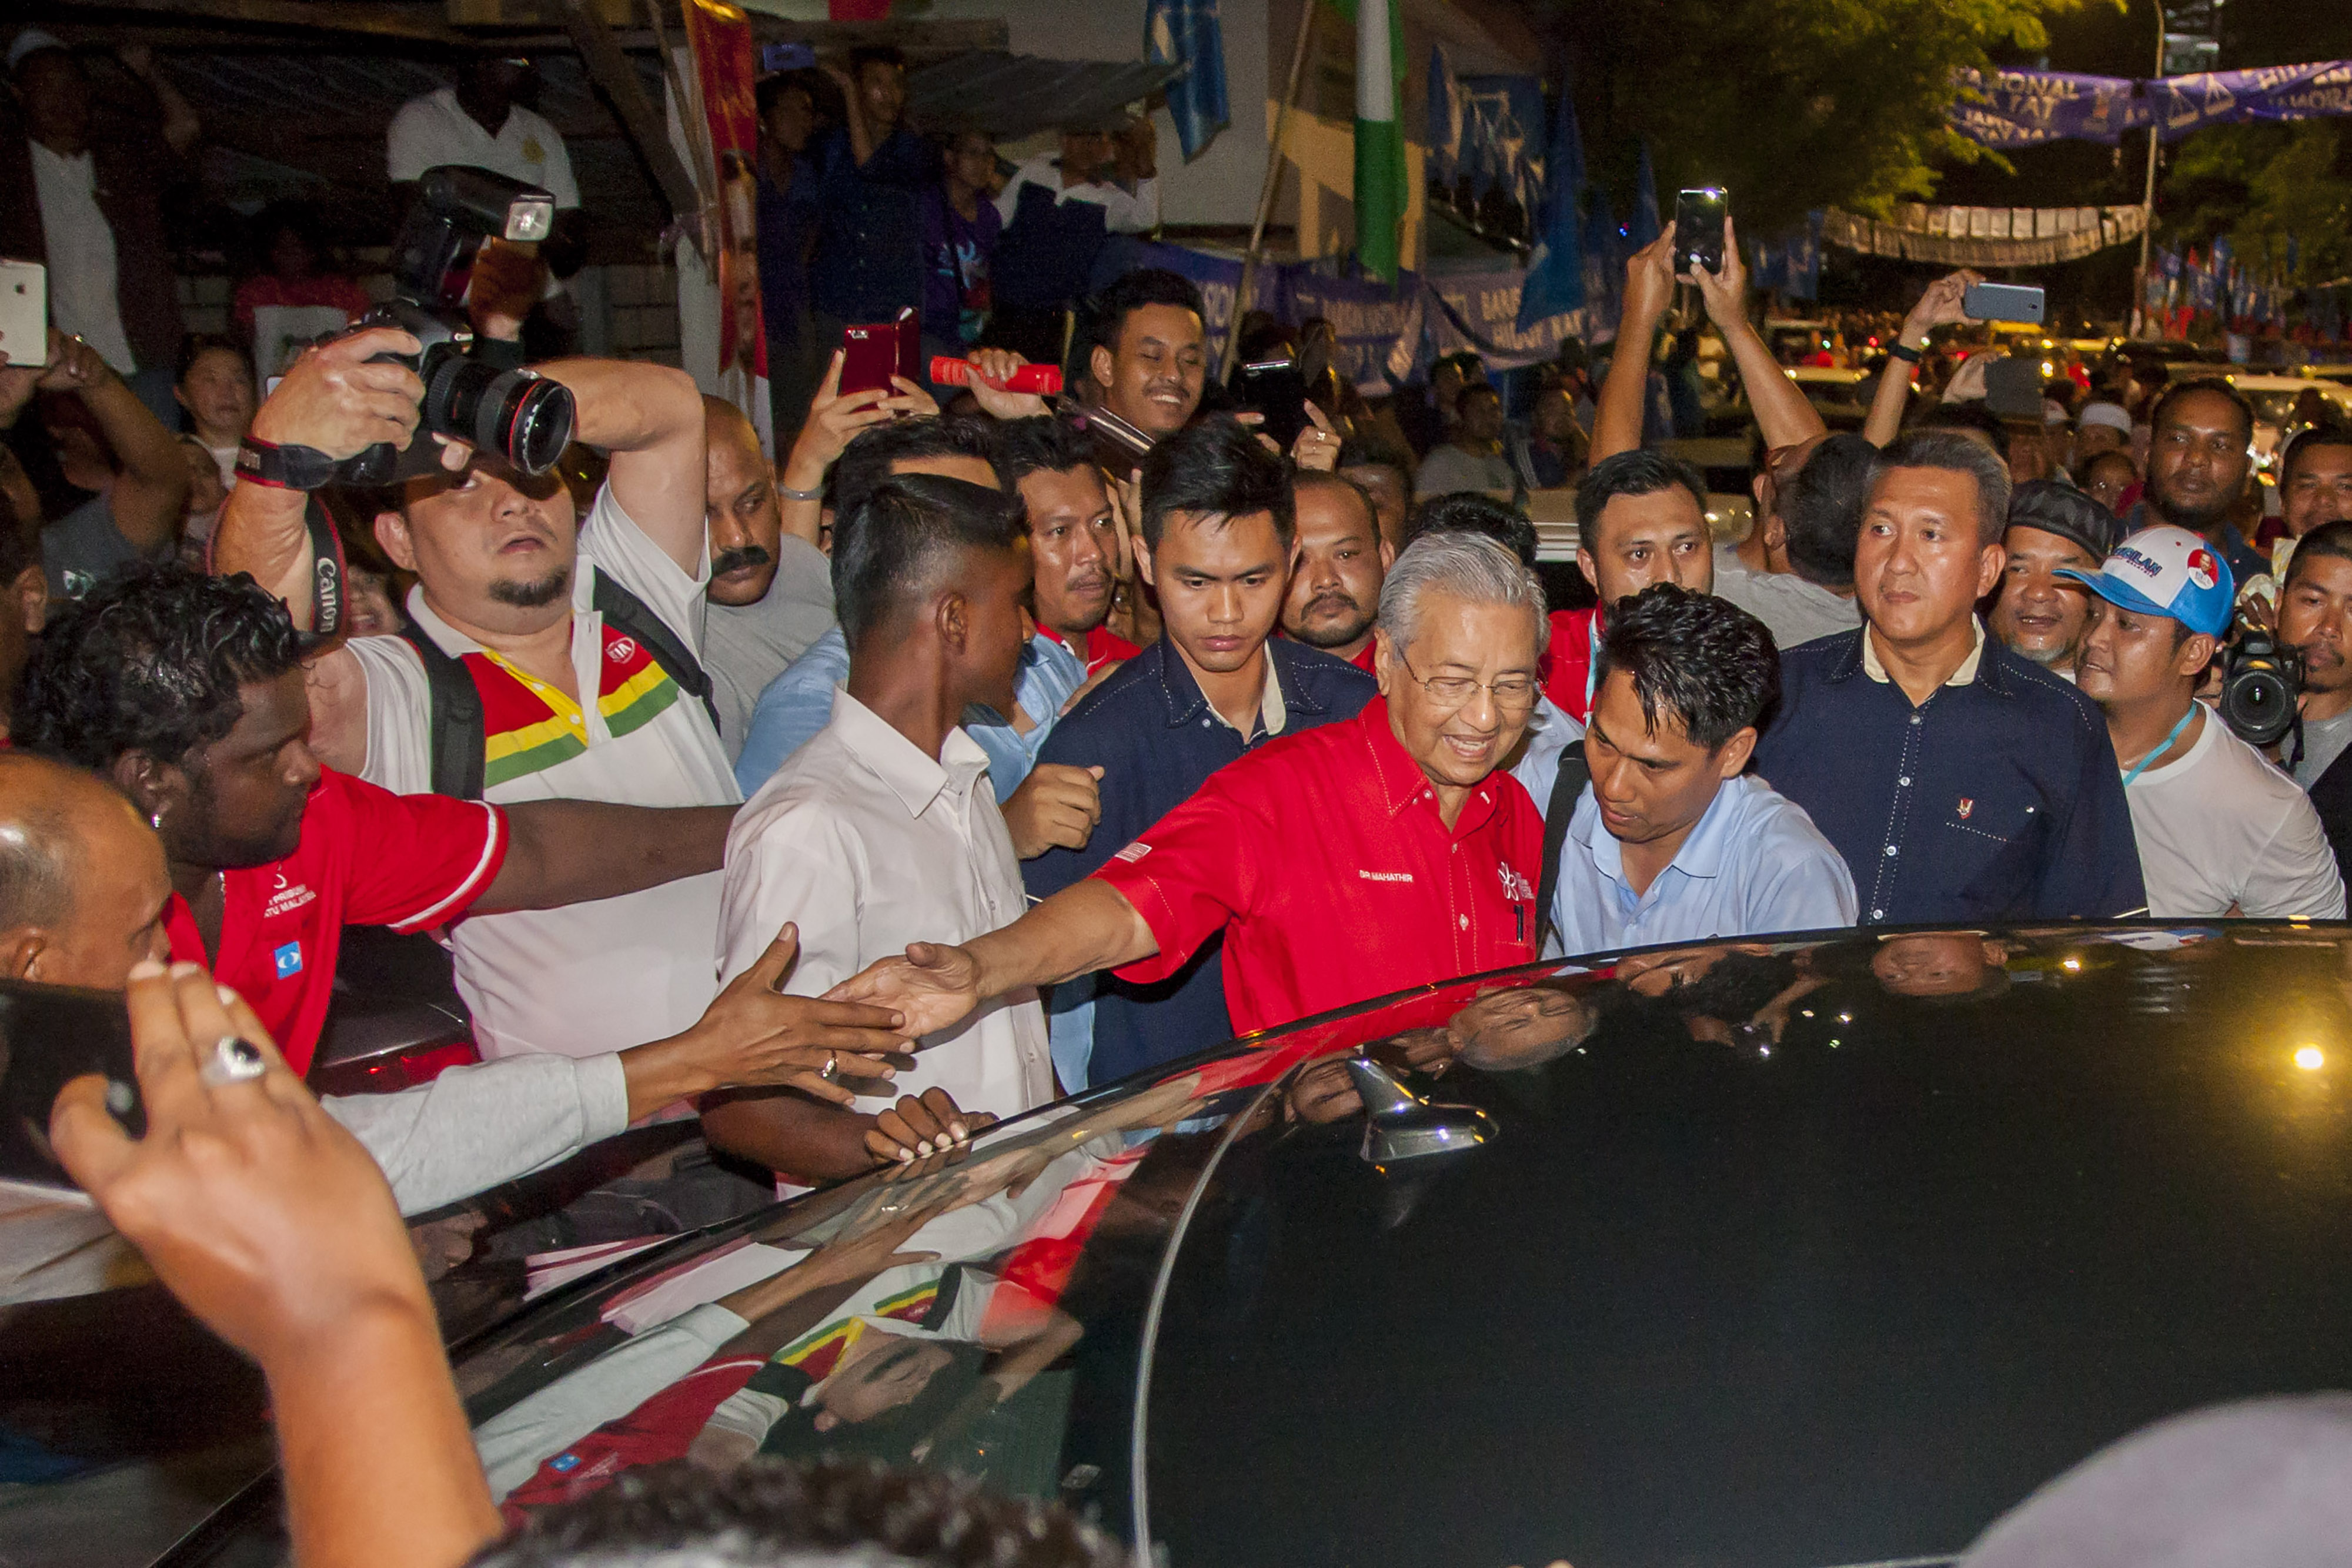 Dr Mahathir Mohamad the former Malaysian prime minister seen shaking hands with one supporter while leaving the Pakatan Harapan campaign rally at PPR Kerinchi, Kuala Lumpur.